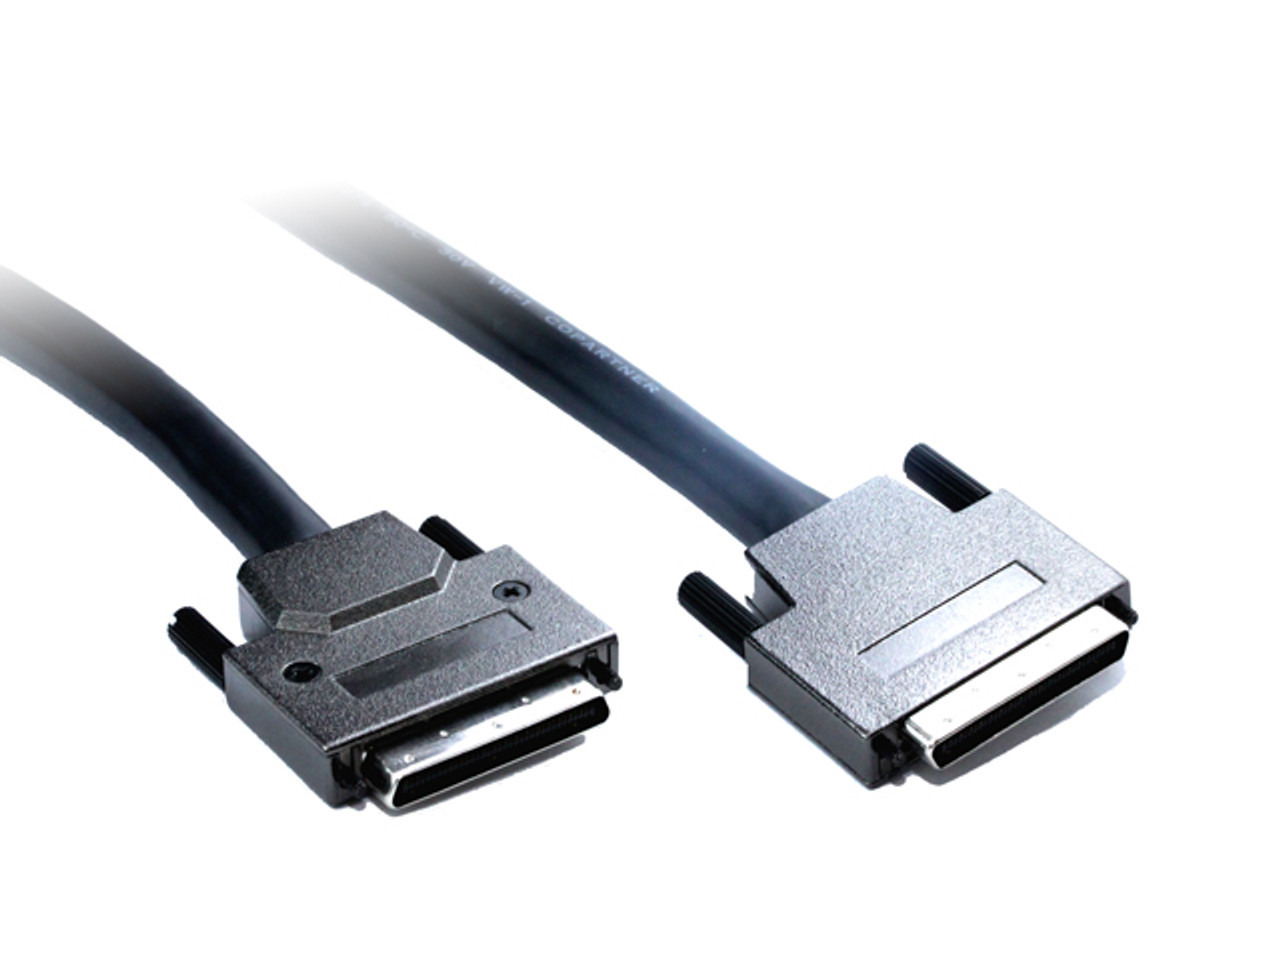 Product image for 2M VHDCI68M -VHDCI68M Cable | CX Computer Superstore